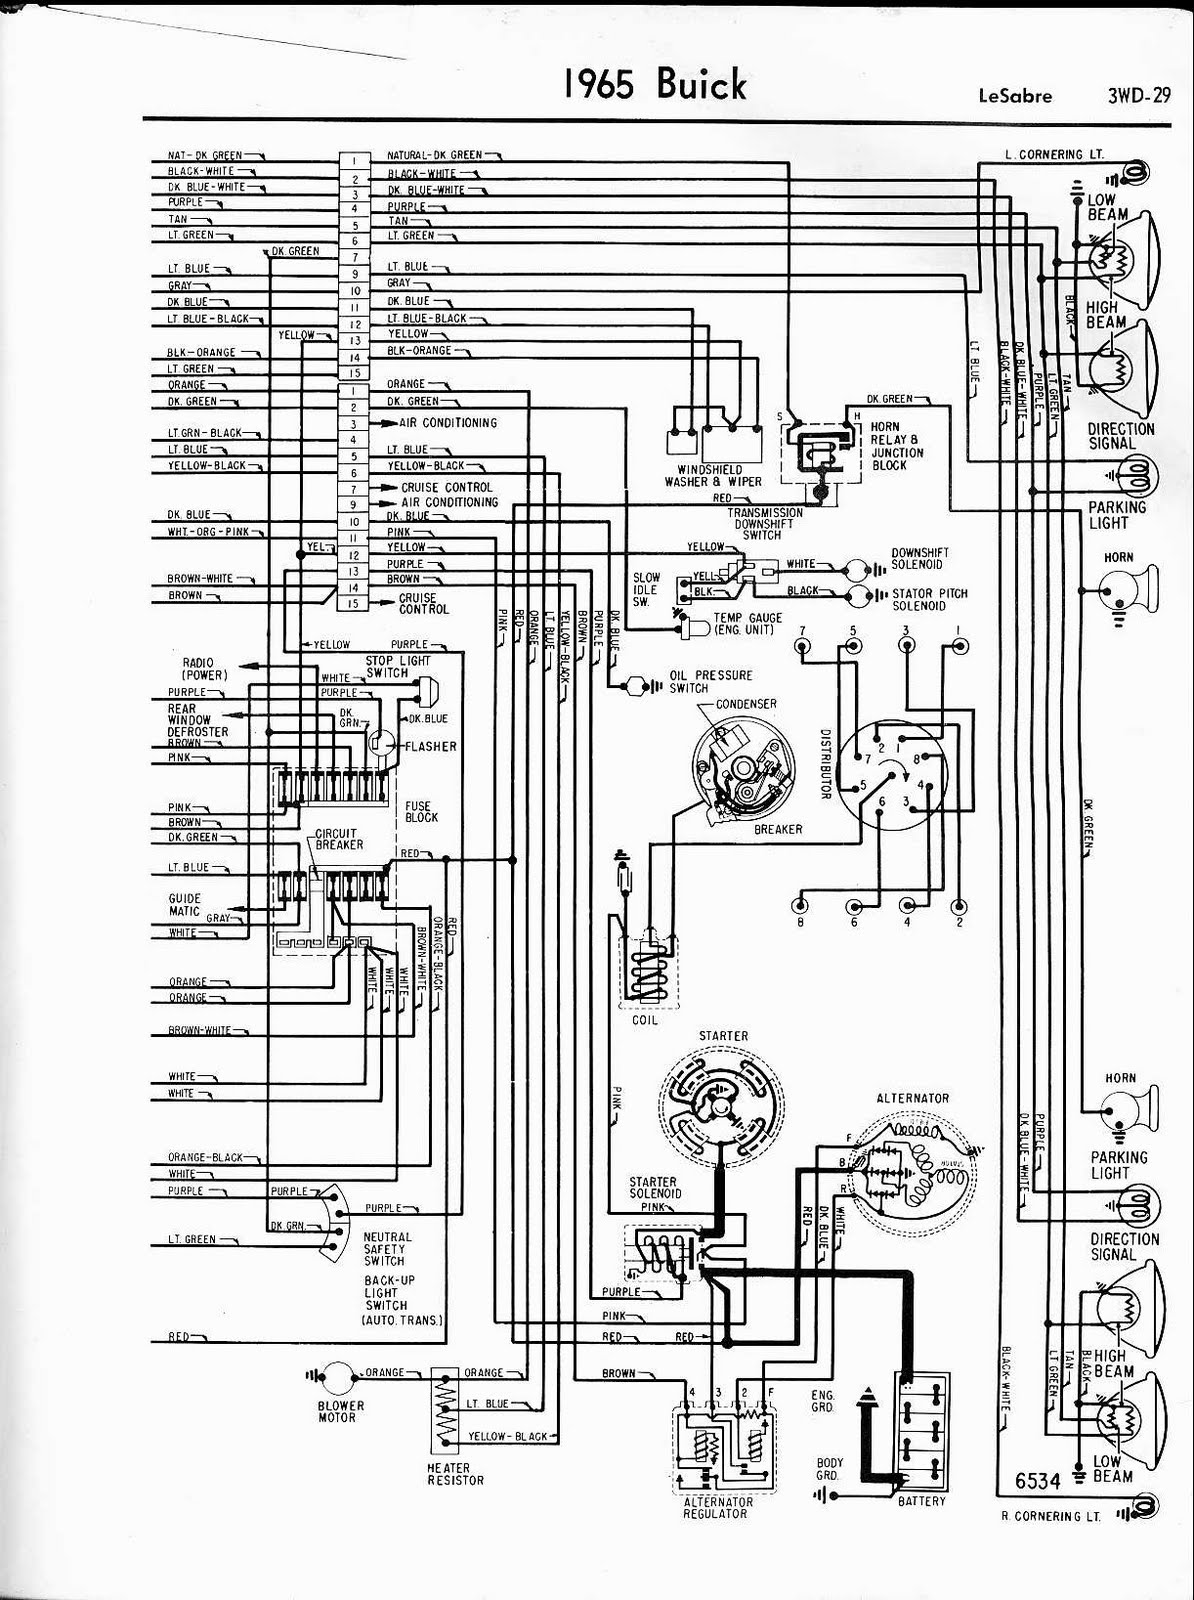 Buick Lesabre Front Side on 2002 Buick Century Wiring Diagram